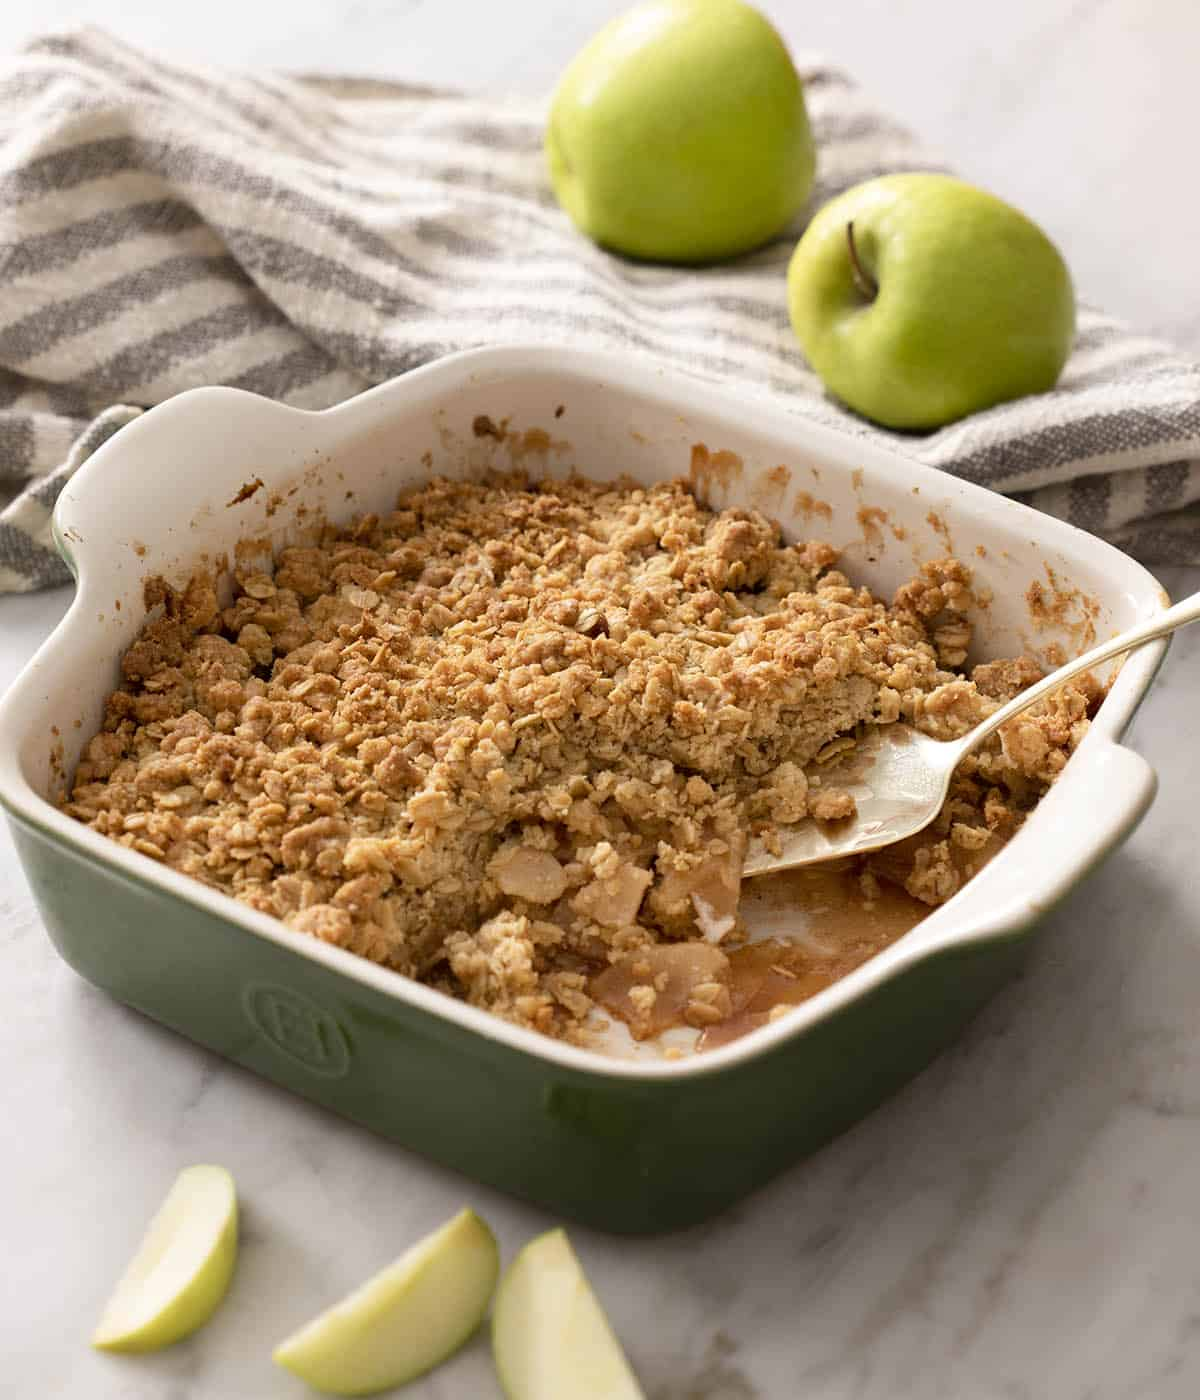 A baking dish of apple crisp on a marble counter.